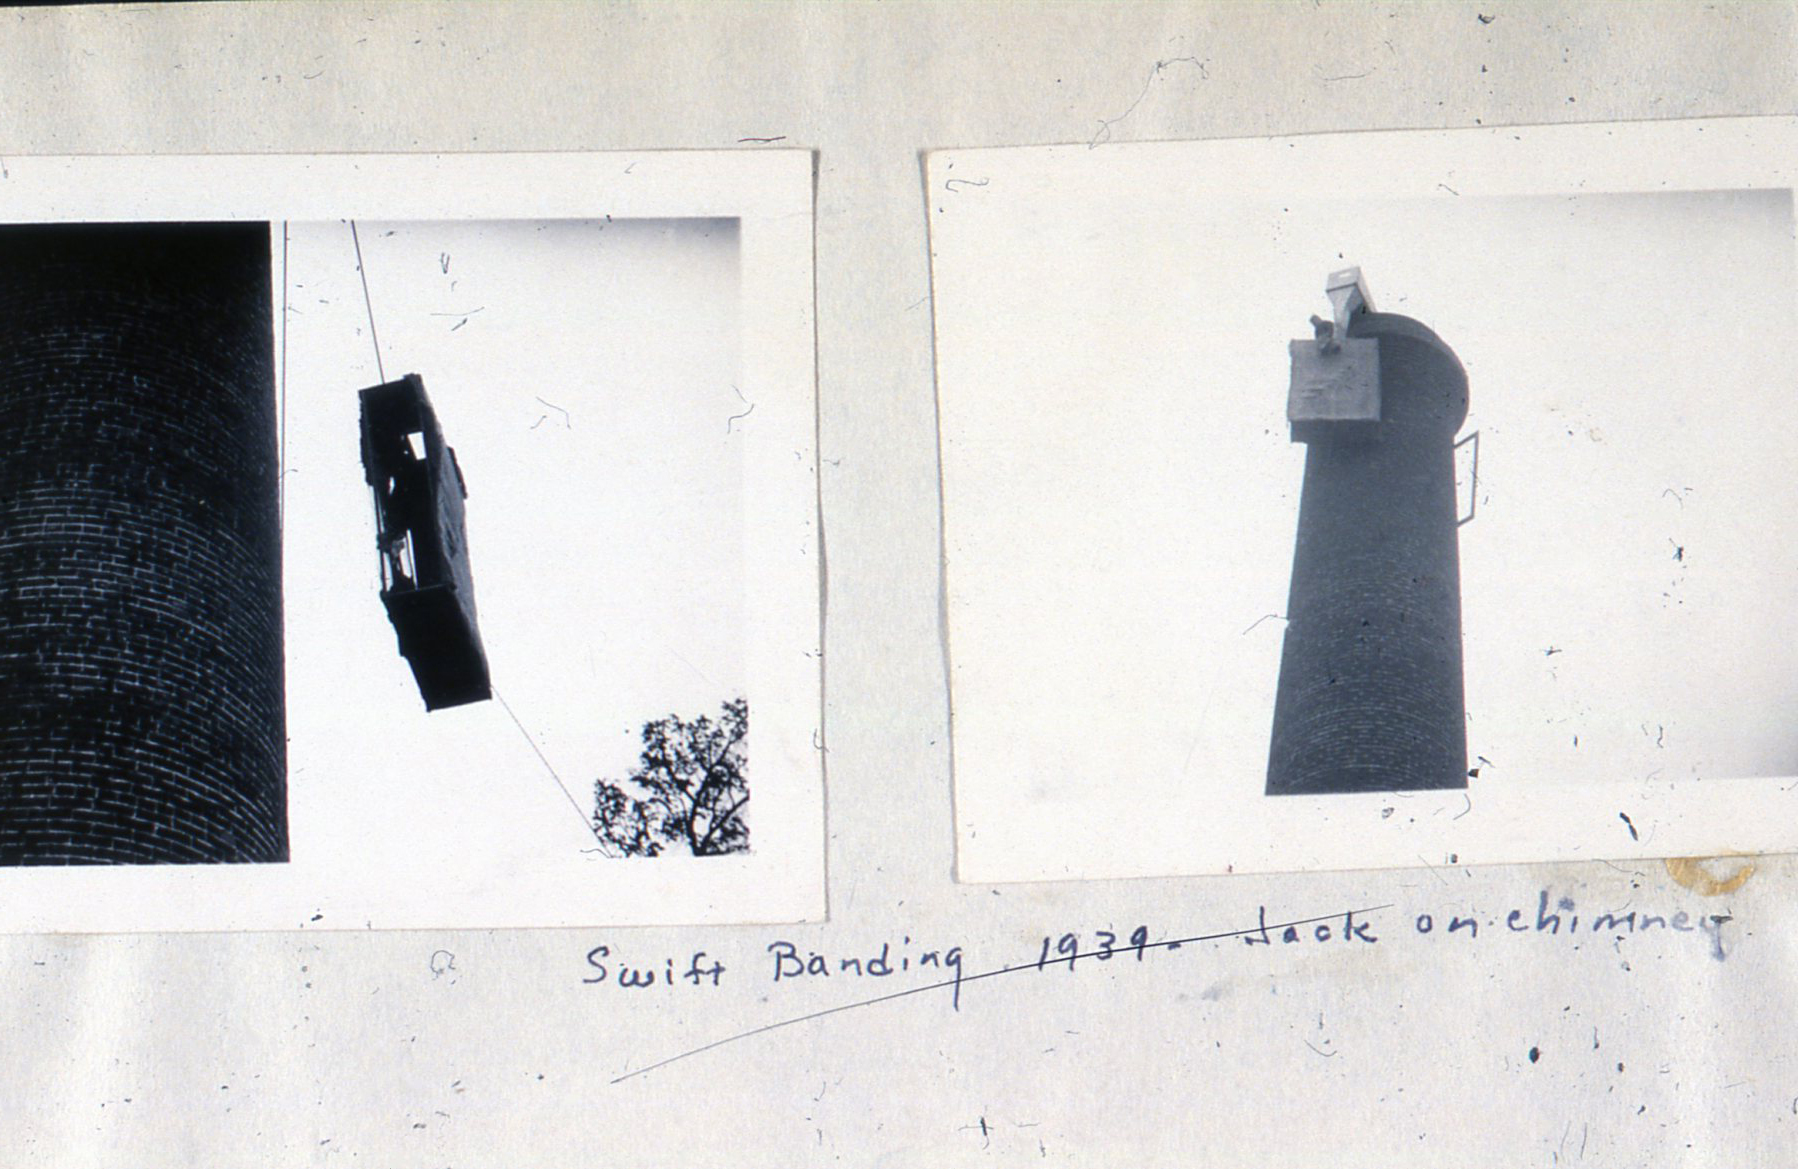 8 Swift banding 1939 - Jack on chimmney